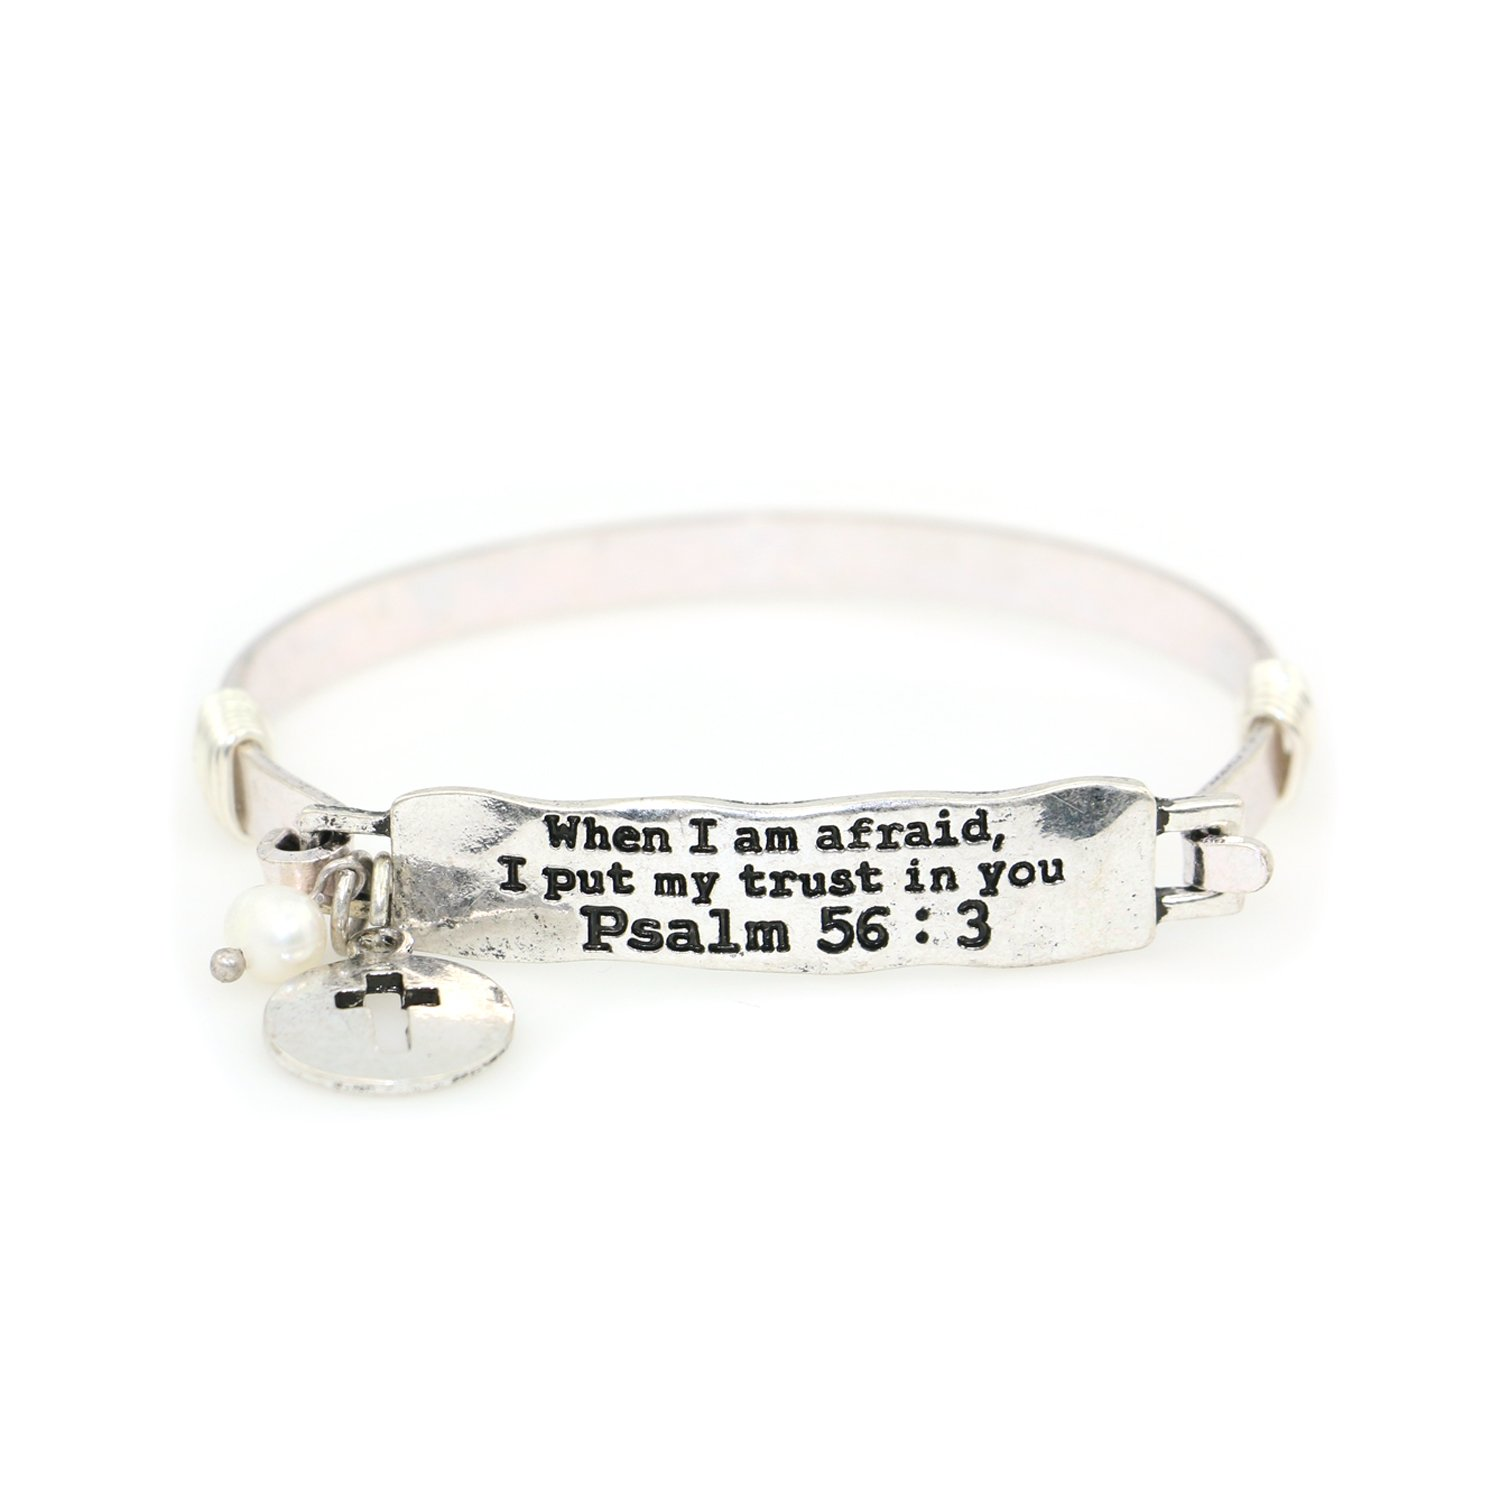 """When I am afraid, I put my trust in you"" Psalm 56:3 Handmade Beautiful Christian Bangle Bracelet with Wire Design and Cross punch out Charm and Bead"